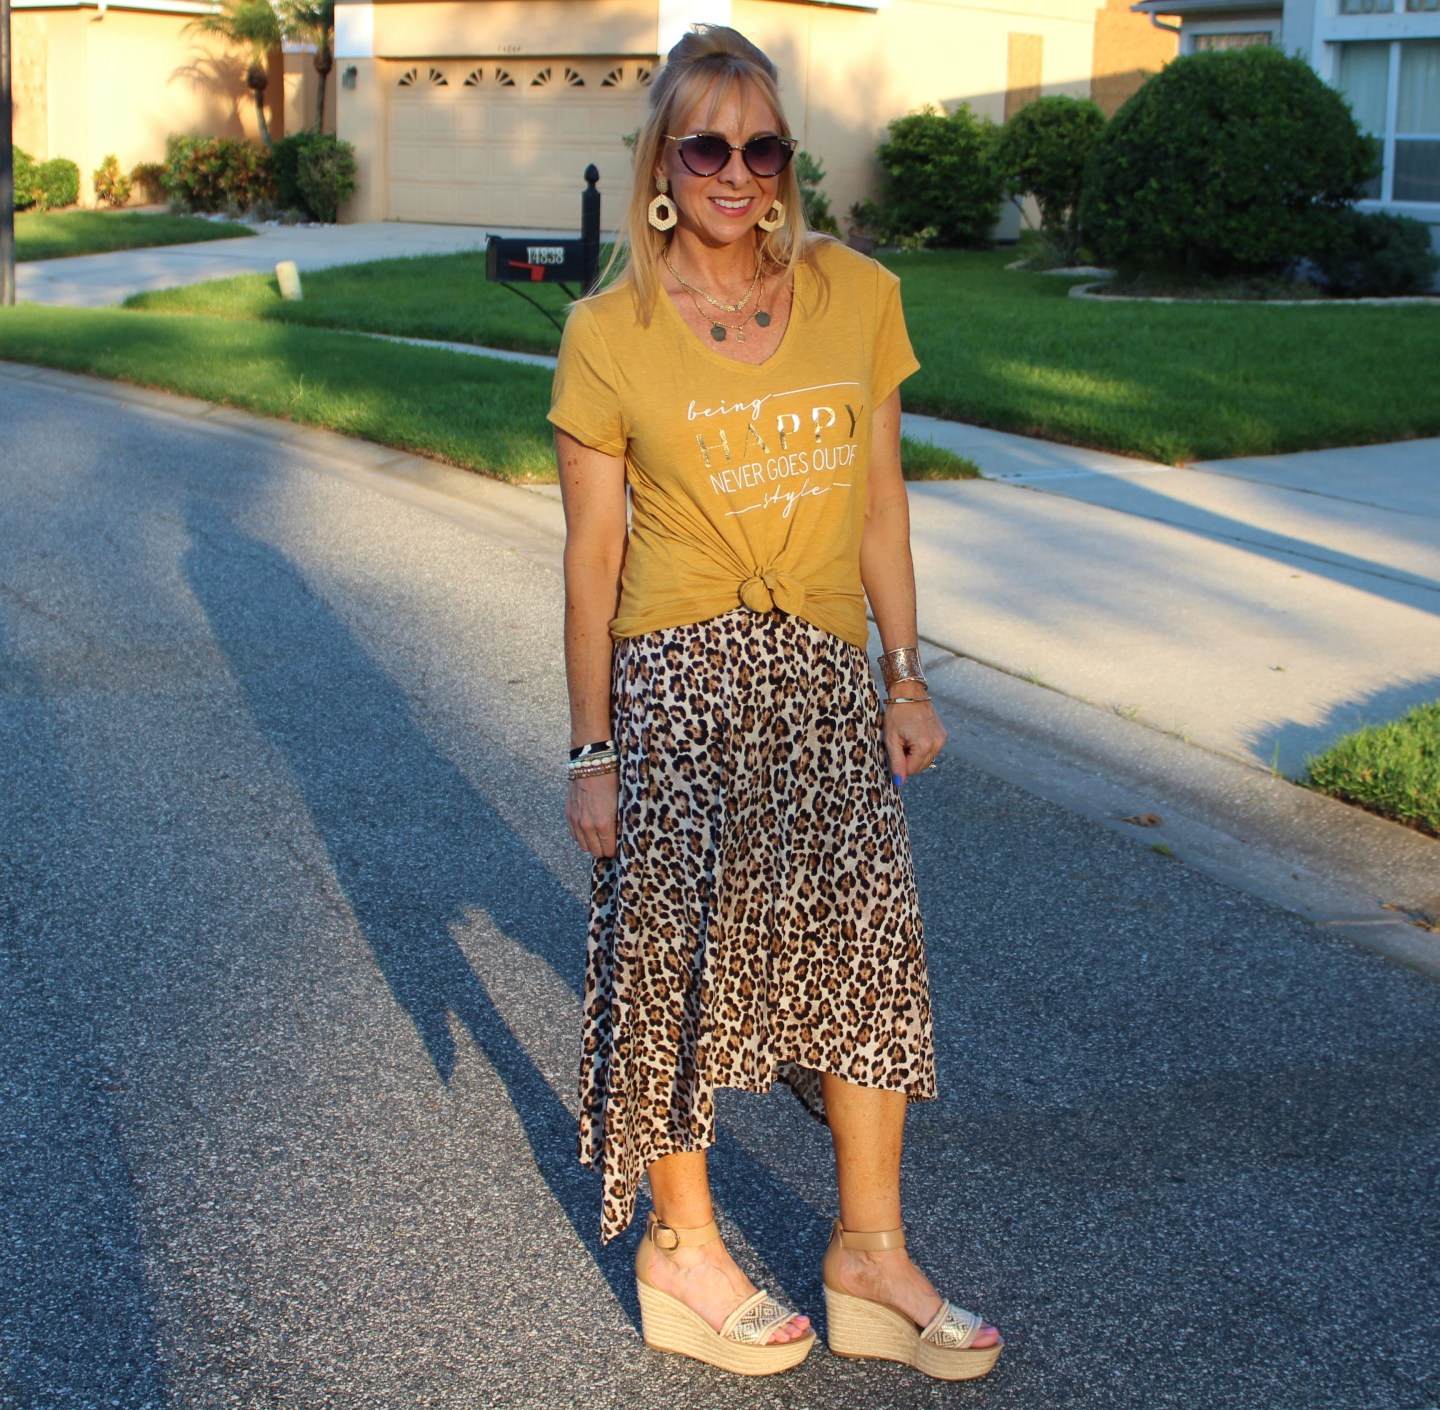 Graphic Tee + Leopard Skirt